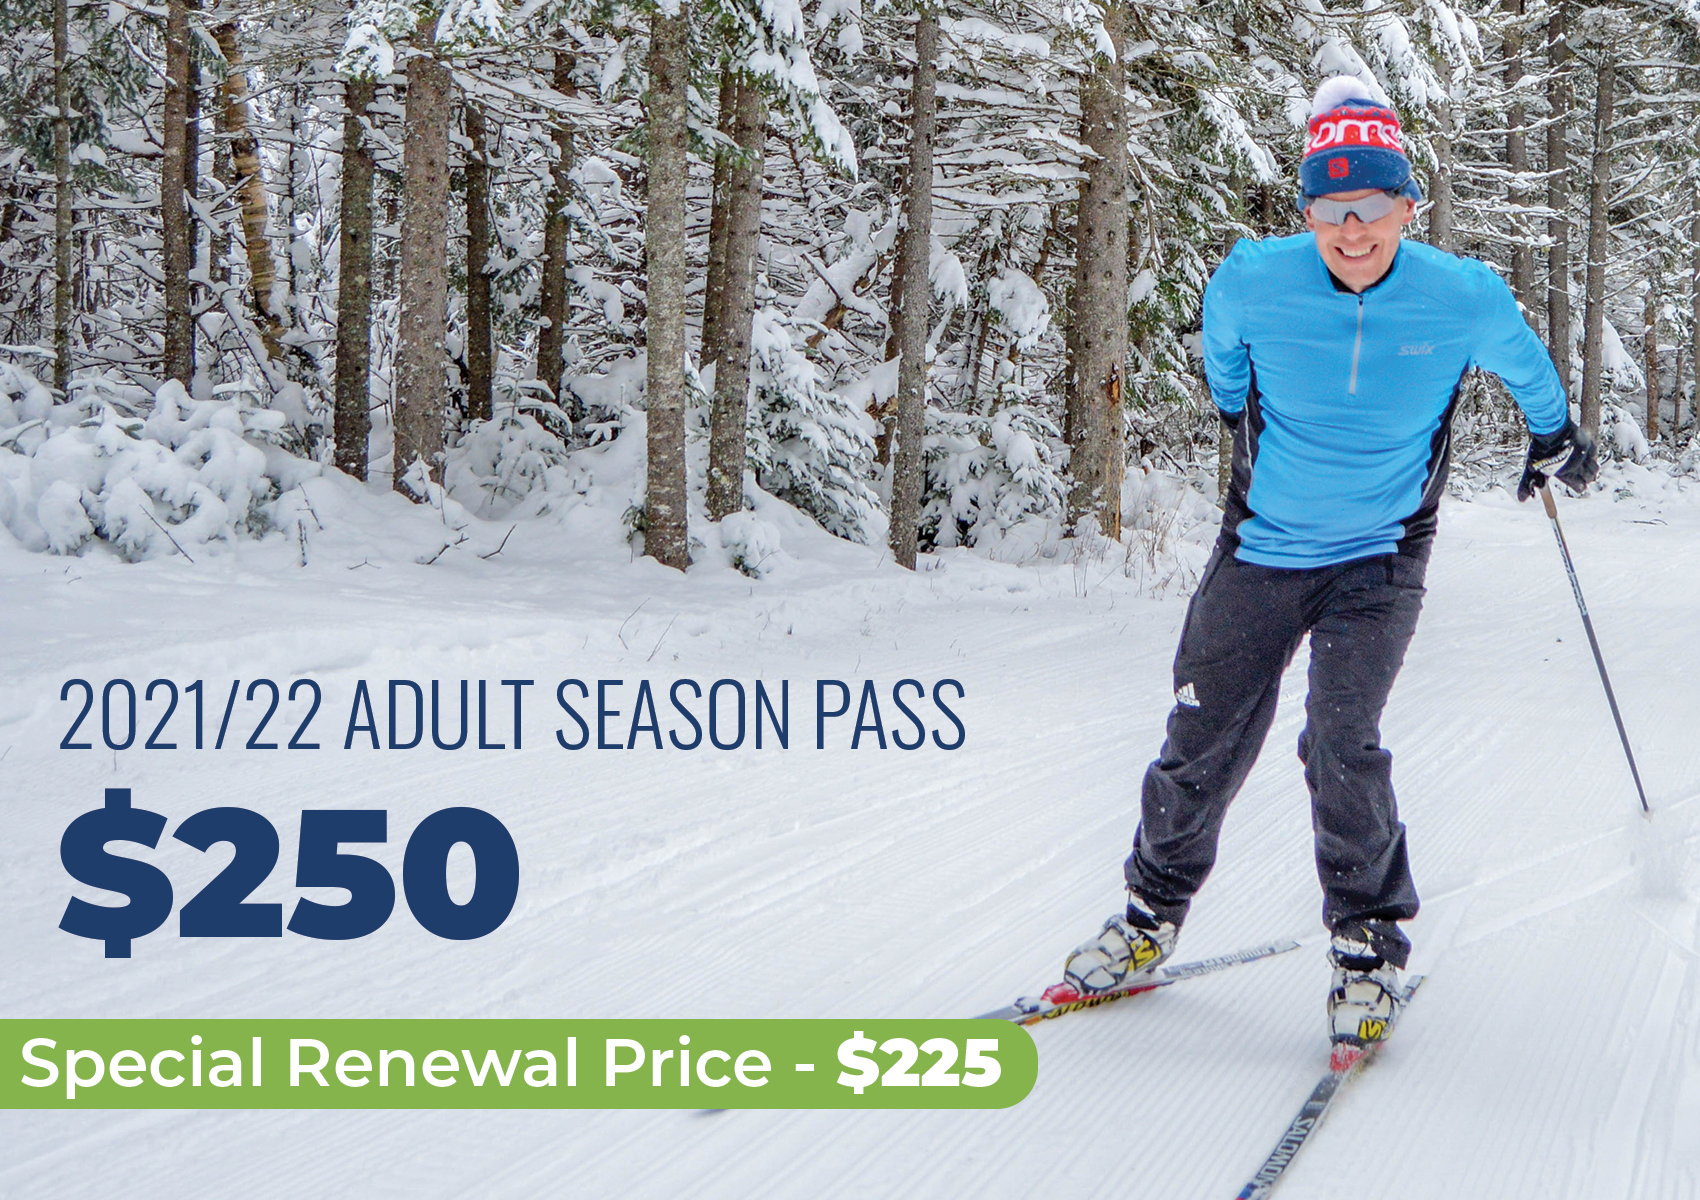 Cross Country Adult Season Pass Pricing